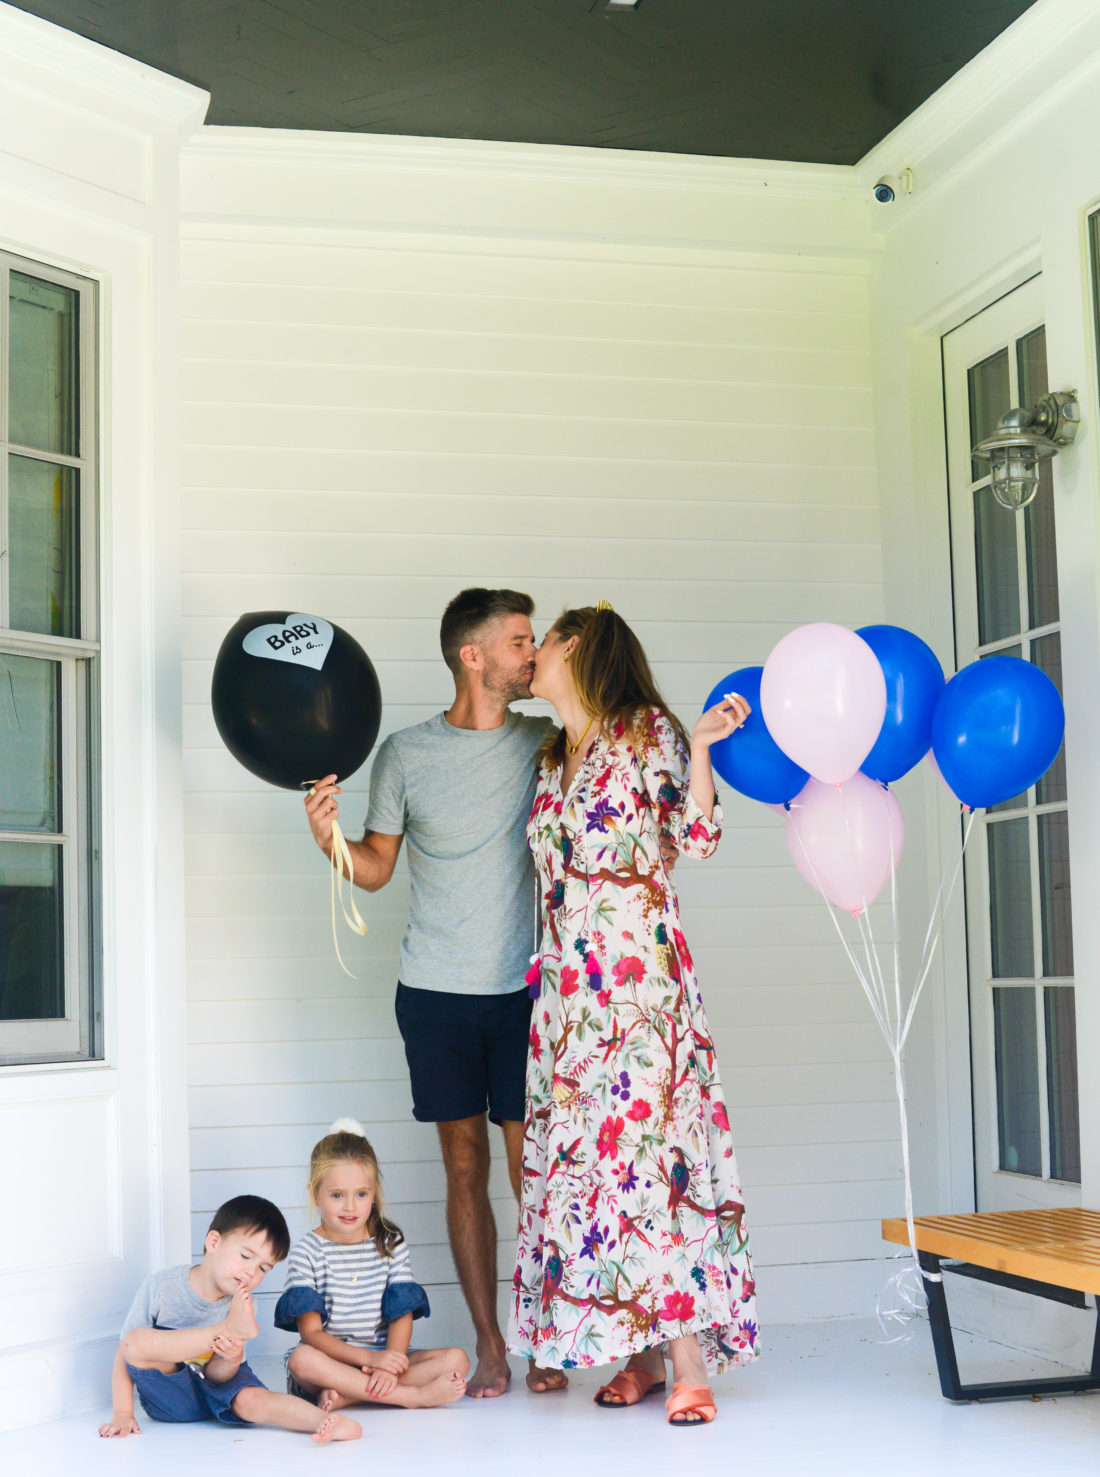 Eva Amurri Martino and husband Kyle hold a balloon with the gender of their third child